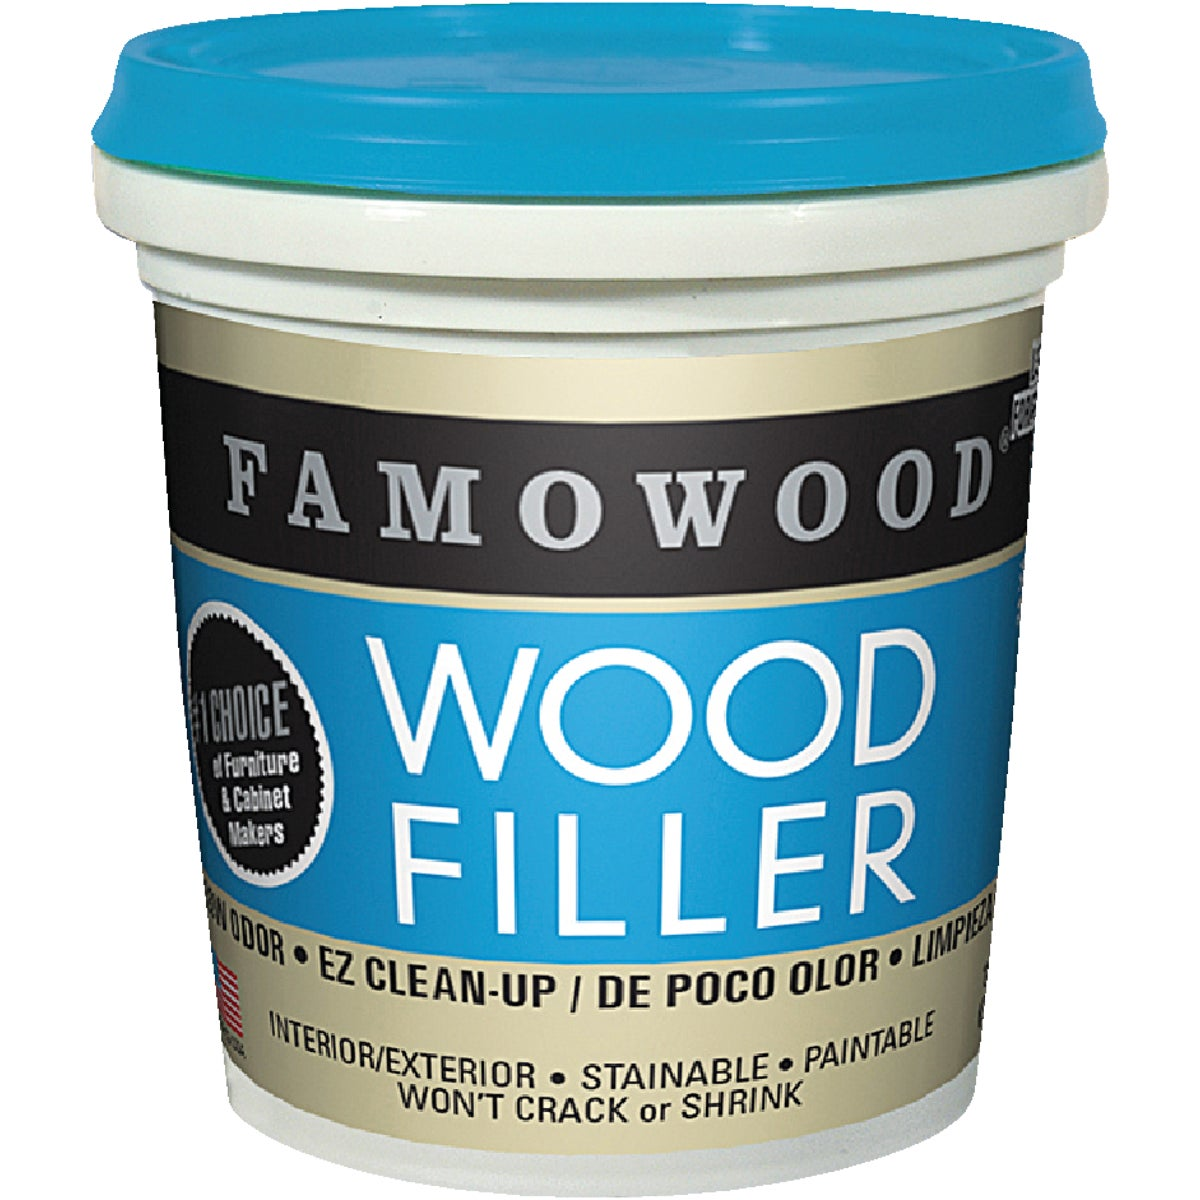 1/4PT MAPLE WOOD FILLER - 40042118 by Eclectic Prod Inc